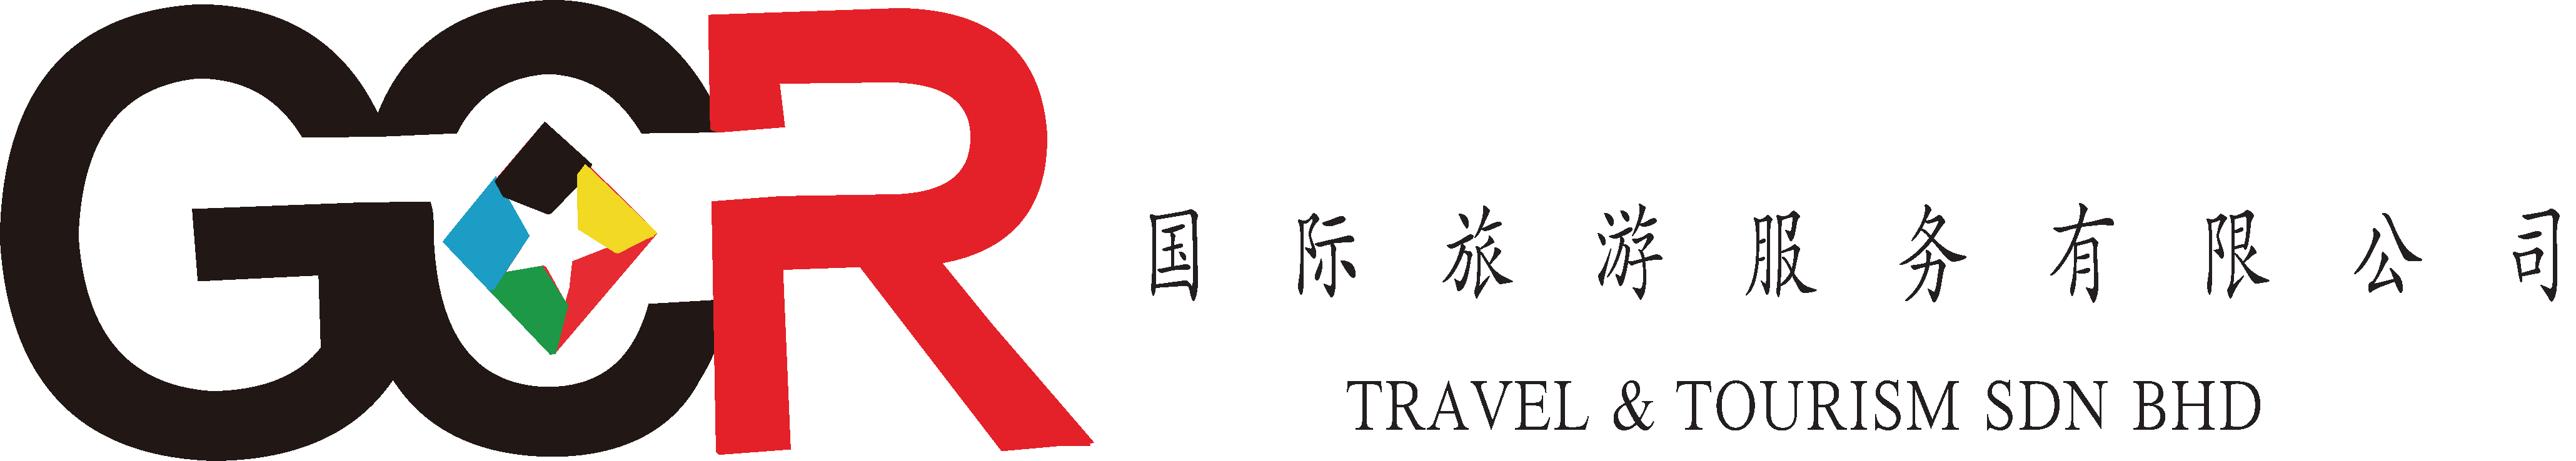 GCR Travel & Tourism